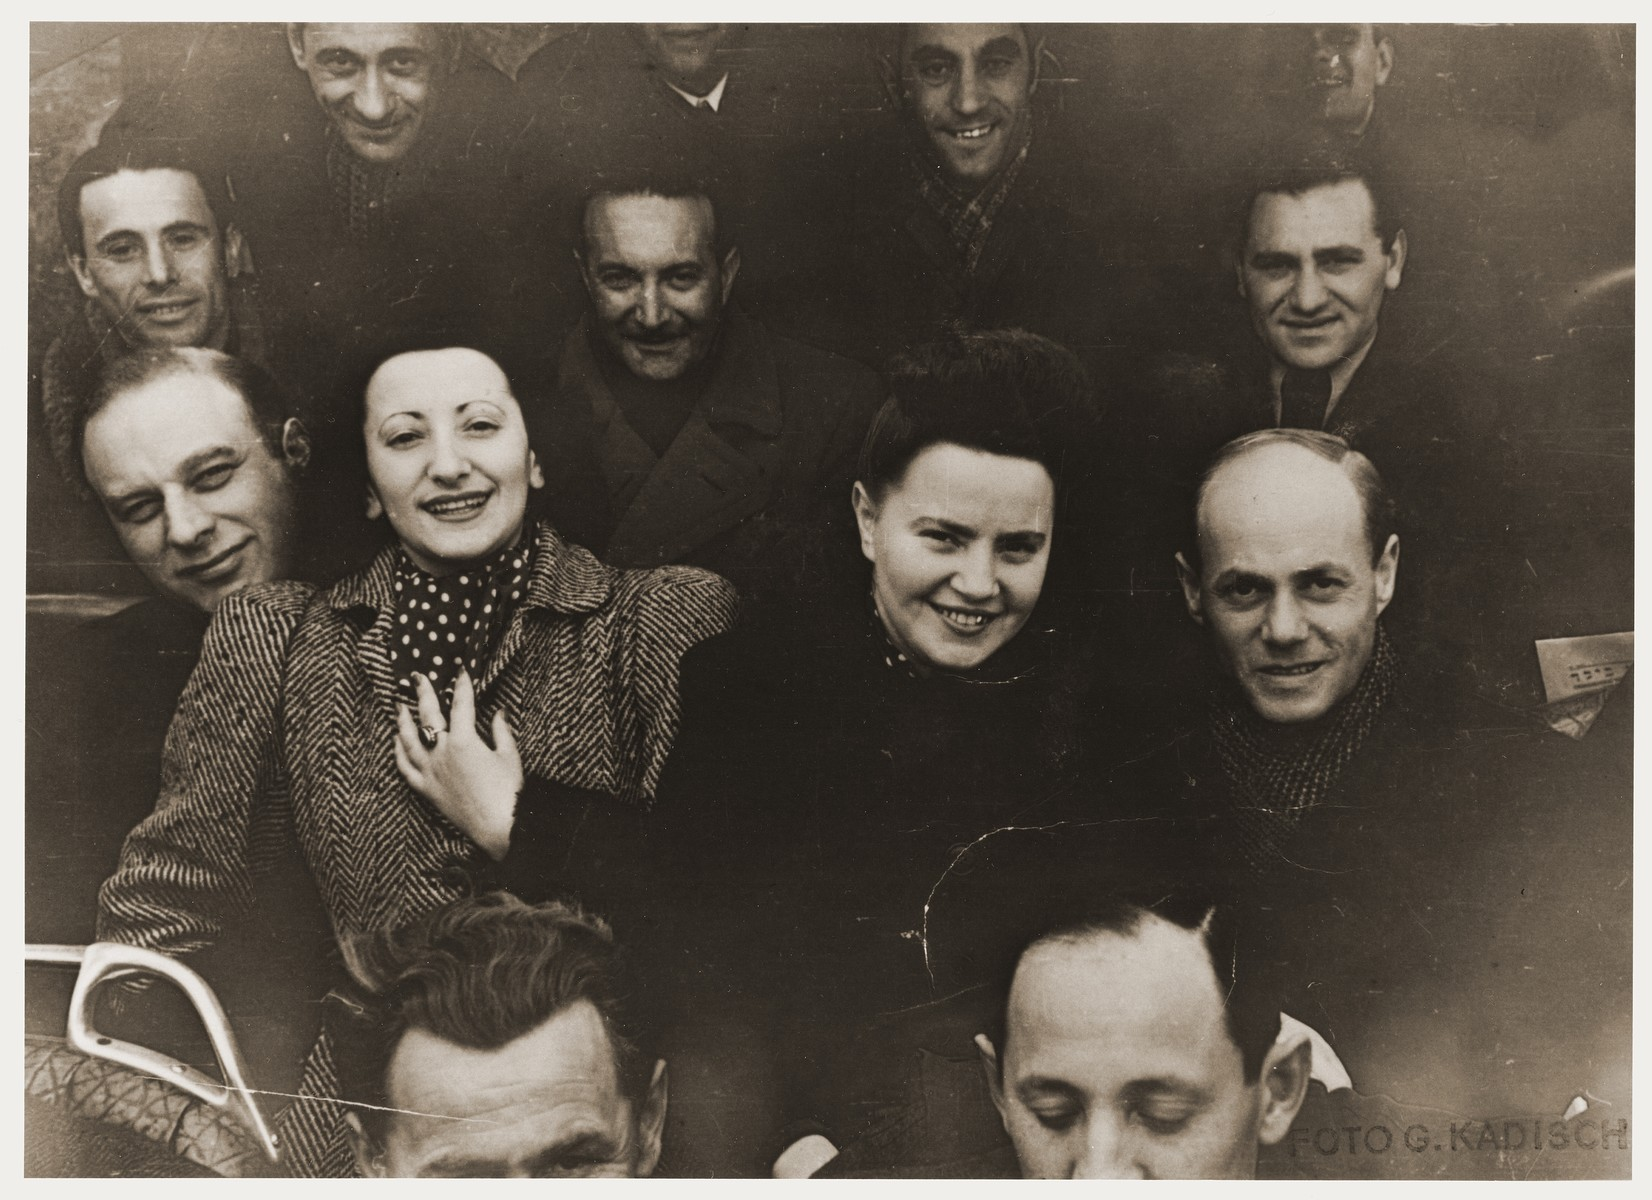 "Members of the X-Concentration Camp Orchestra on their bus during a concert tour.   Henia Durmashkin is on the left.  Her sister, Fania Durmashkin Becker is beside her.  Fania's husband, Max Becker is in the back, second from the right.  Henia Durmashkin was born in Vilna in 1926.  She is the daughter of Sonia and Akiva Durmashkin, who was a highly-regarded musician, composer, and the conductor of the choir in the City Temple of Vilna.  The youngest Durmashkin, Henia had a sister, Fania, a trained pianist, and a brother, Wolf, a child prodigy and later, a renowned conductor.  Henia's vocal talent was discovered early.  While in the second grade at the Tarbut Gymnasium, Henia performed songs for Hayyim Bialik at a program honoring his visit.  The songs were Bialik's poems put to music composed by Akiva Durmashkin.  Henia went on to study at the Conservatory of Music in Vilna, and in 1940, she was the only Jew accepted to the City Choir of Vilna.  In the summer of 1941, Henia and her family were moved into the Vilna Ghetto, and soon after, Akiva was arrested and deported during an action.  In 1942, the Hebrew Ghetto Choir of Vilna gave its first concert under the direction of Wolf Durmashkin with Henia and Fania both participating.  The Vilna Ghetto was liquidated in September 1943.  Sonia Durmashkin was too frail to be selected for labor.  Wolf was deported to labor camps in Estonia.  Henia and Fania were sent to Riga, and for the next two years, to a number of other labor camps.  In one camp, Henia met Abrasha Stupel, a violinist.  Henia and Fania were liberated on a death march from Dachau, May 1, 1945, by the U.S. Army.  Soon after, Henia was invited by Abrasha Stupel to join a group of musicians gathered at St. Ottilien DP Hospital.  They called themselves the ""St. Ottilien Orchestra,"" the ""X-Concentration Camp Orchestra,"" and finally the ""Representative Orchestra of the She'erit Ha-Peletah.""  In 1946, the orchestra relocated from St. Ottilien to Fuerstenfeldbruck.  They were employed by the JDC, UNRRA, and IRO to play at DP camps throughout the U.S. and British zones of Germany.  During her travels, Henia learned that her beloved brother, Wolf Durmashkin, had been killed along with other inmates of Klooga, one hour before the liberation of the camp.  In 1948, Leonard Bernstein traveled to Germany to conduct the Munich Symphony Orchestra.  In May, in a Munich theatre, he accompanied Henia for two Hebrew songs. Henia Durmashkin immigrated to the United States, where she and her sister, Fania, continued to perform."